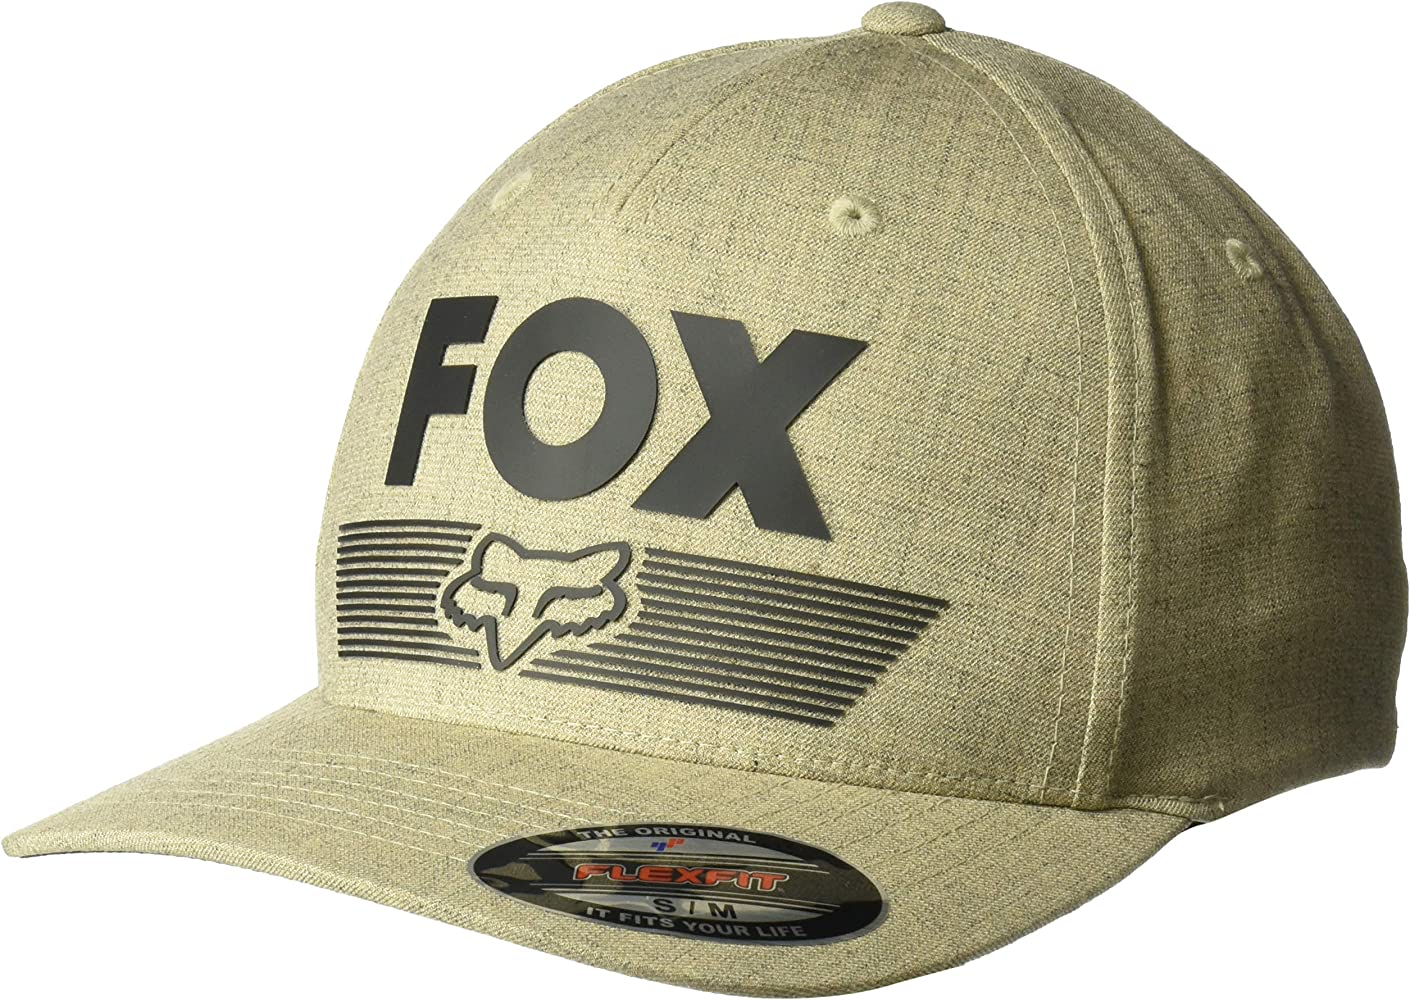 Fox Gorras Aviator Sand Flexfit: Amazon.es: Ropa y accesorios